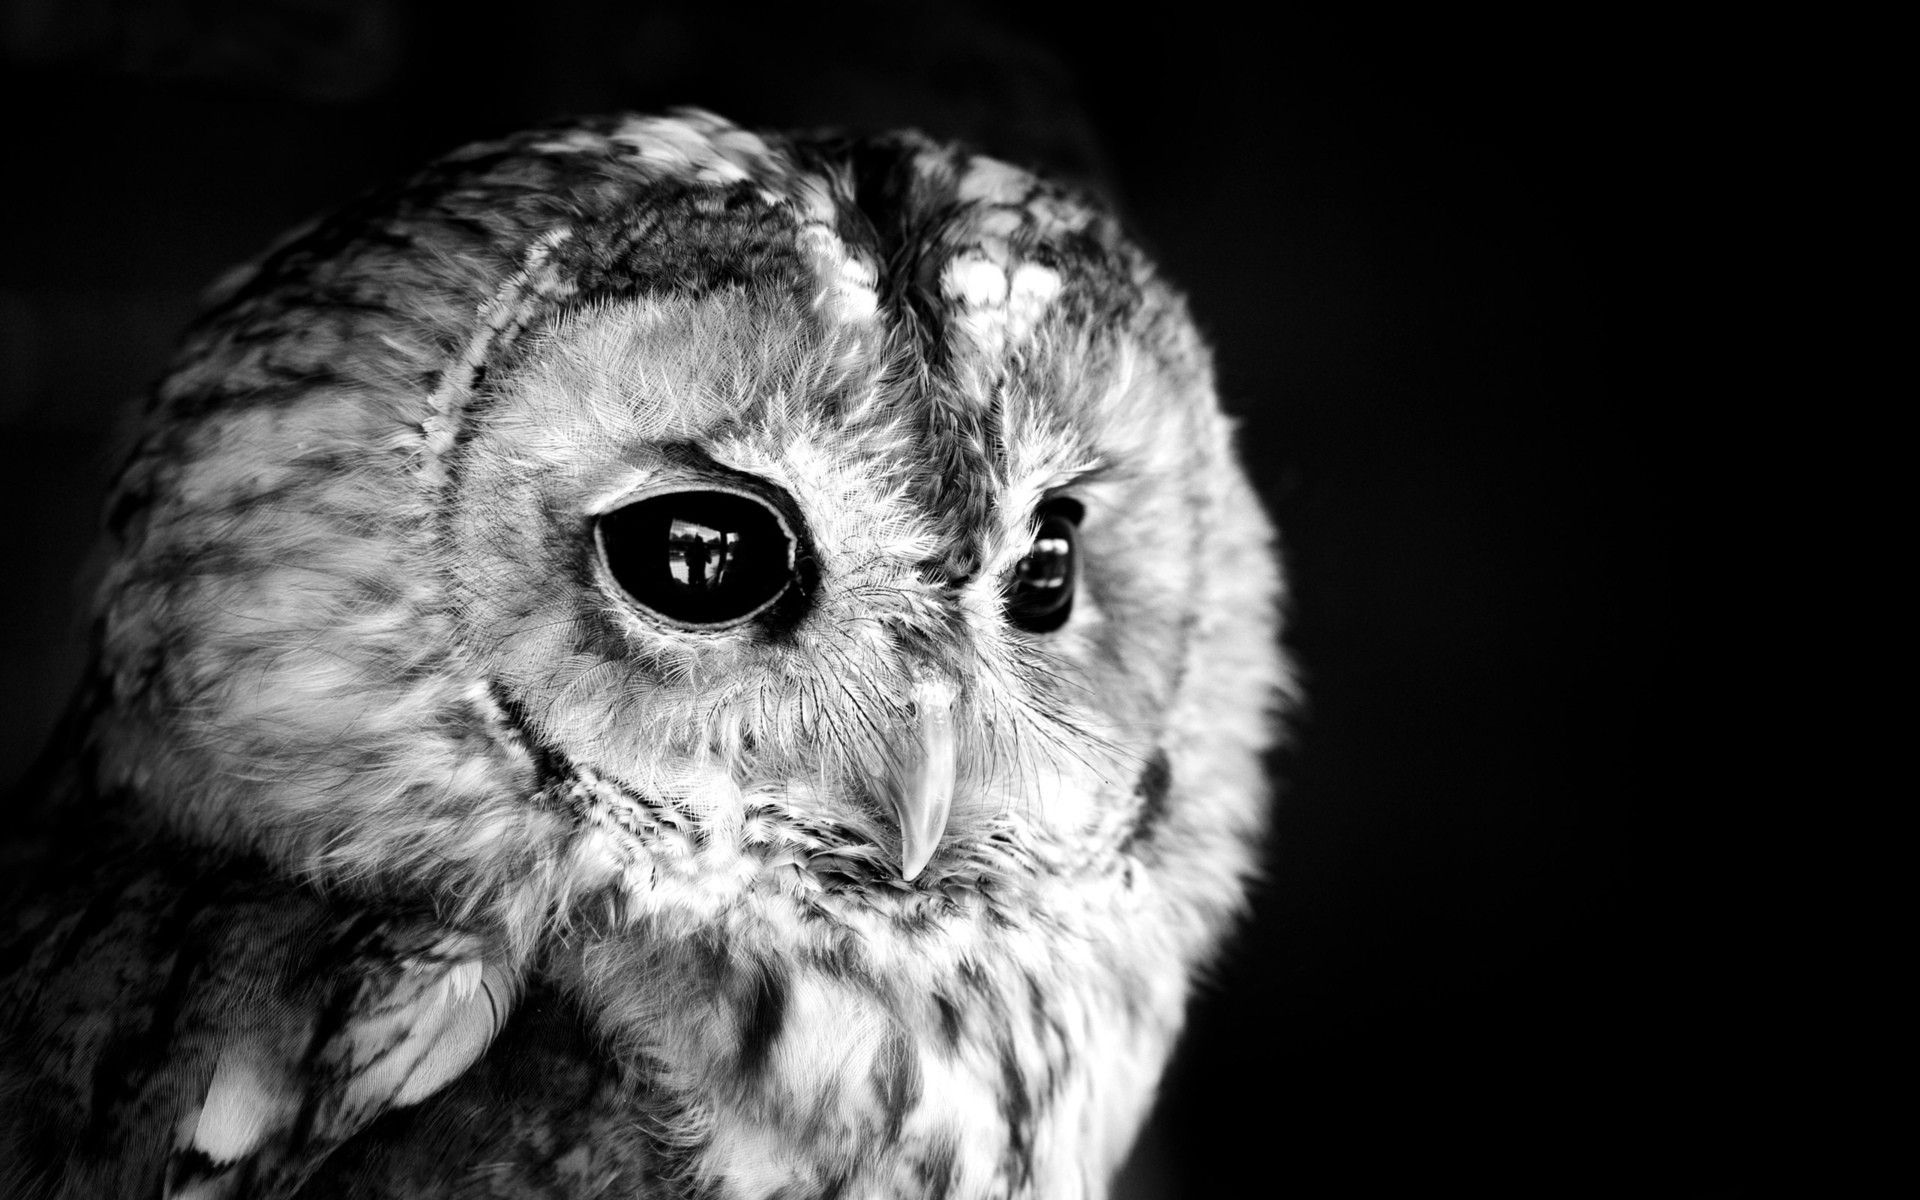 owl background birds owls monochrome desktop grayscale animal wallpapers macro feathers backgrounds animals protector mono eyes flickr incredible photographyblogger goddess